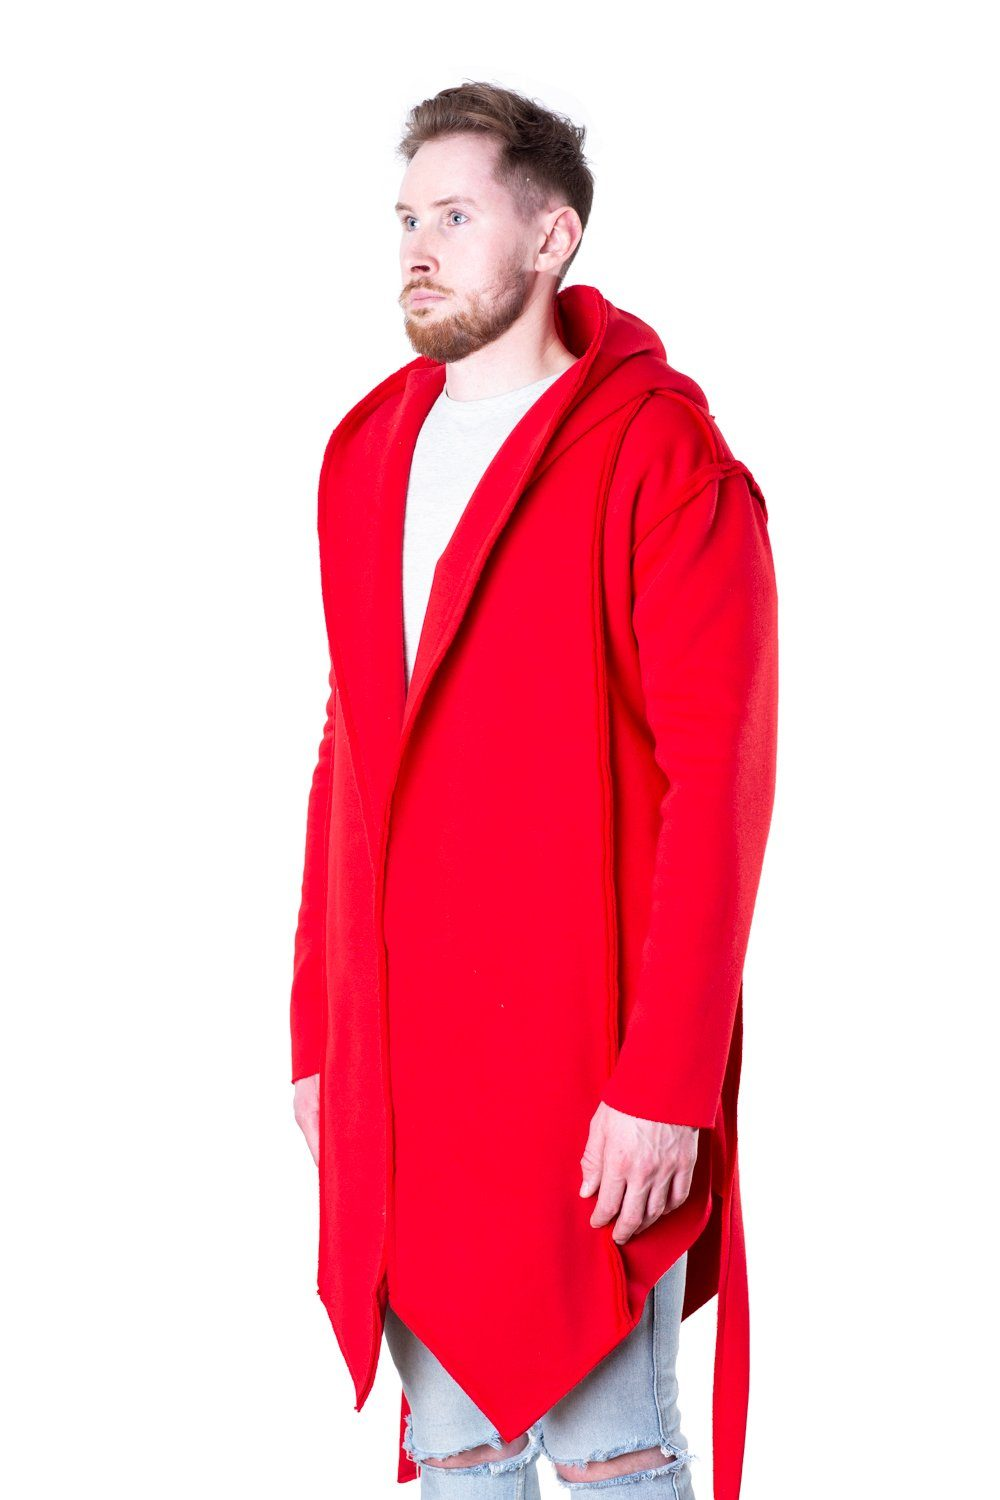 TheG Man Designer Cardigan 2.0 // red